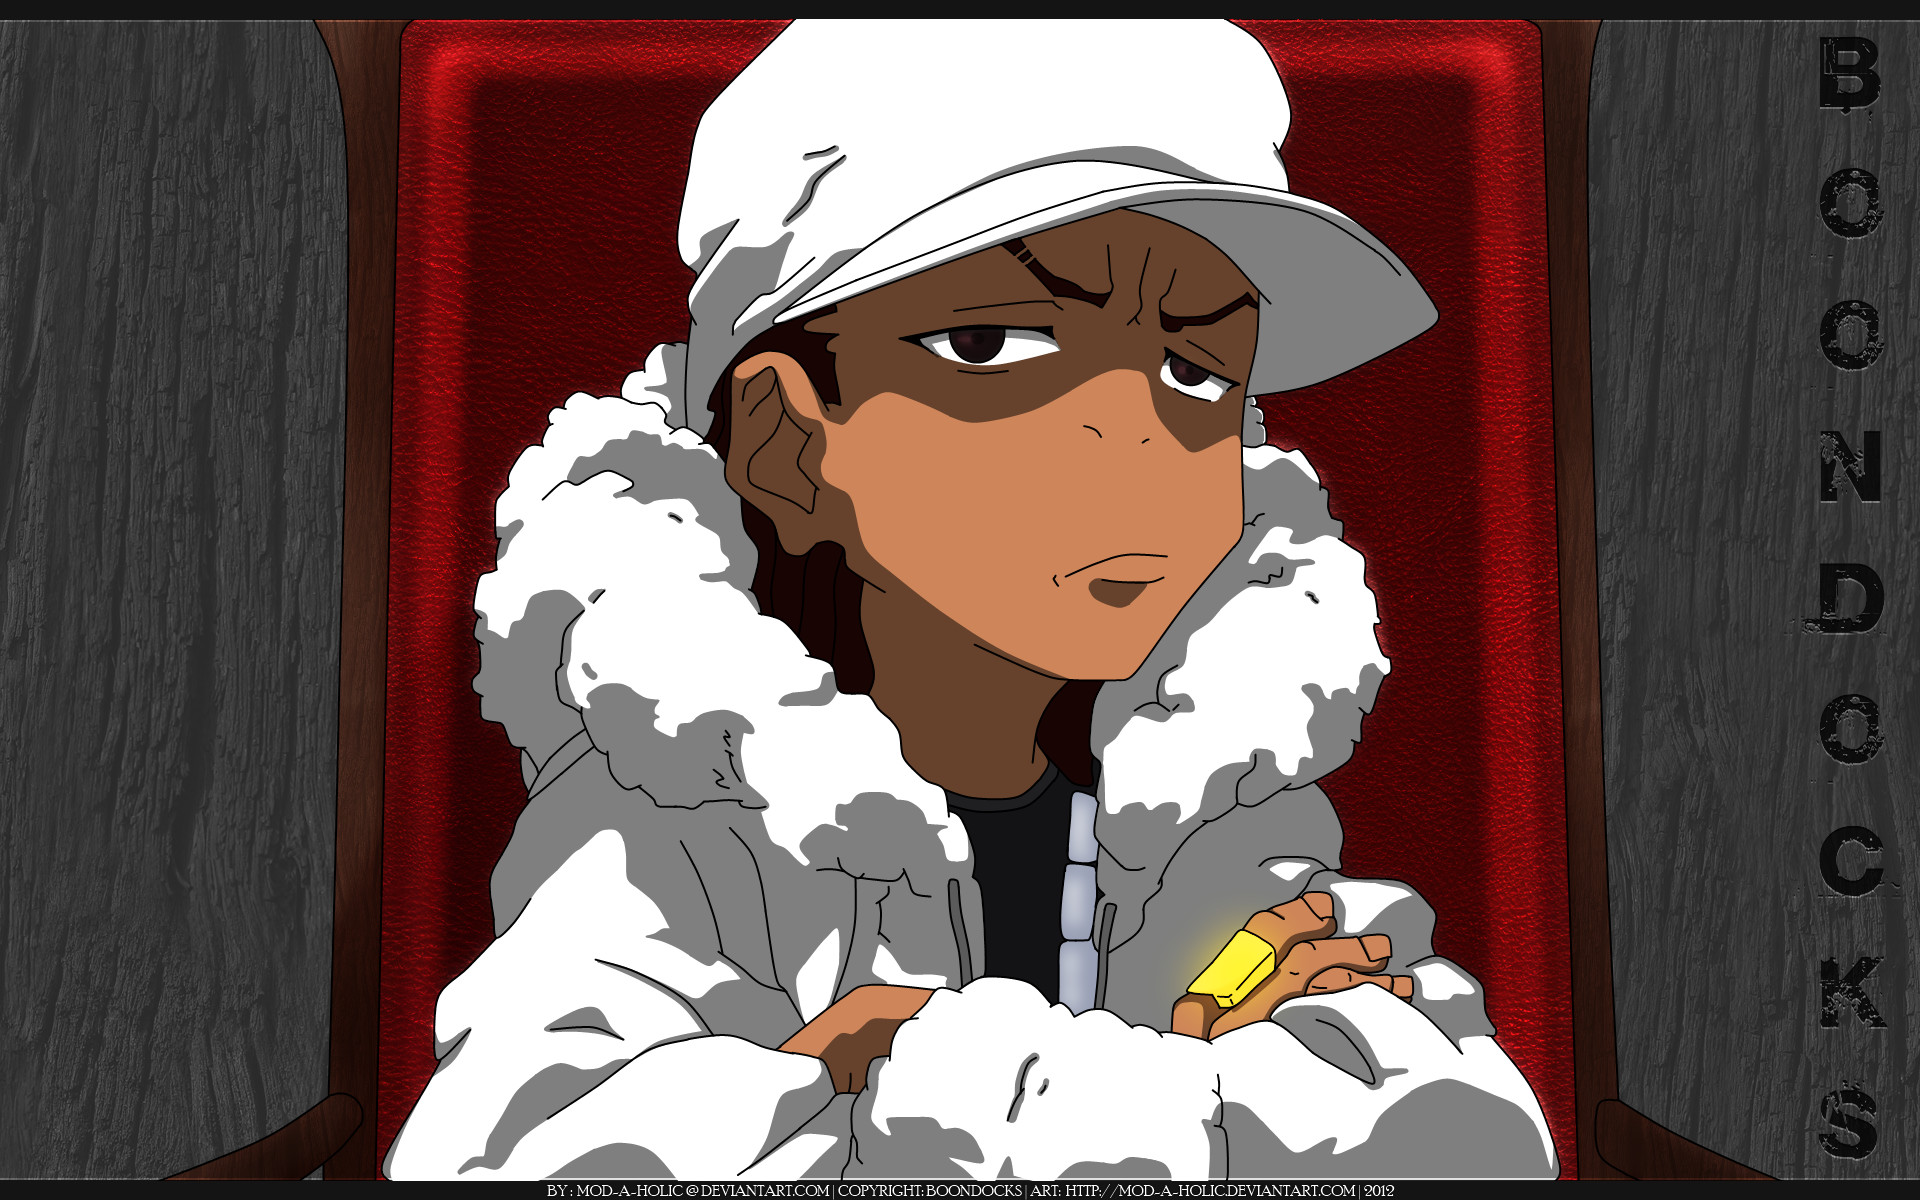 QG The Boondocks Wallpapers HD Awesome The Boondocks